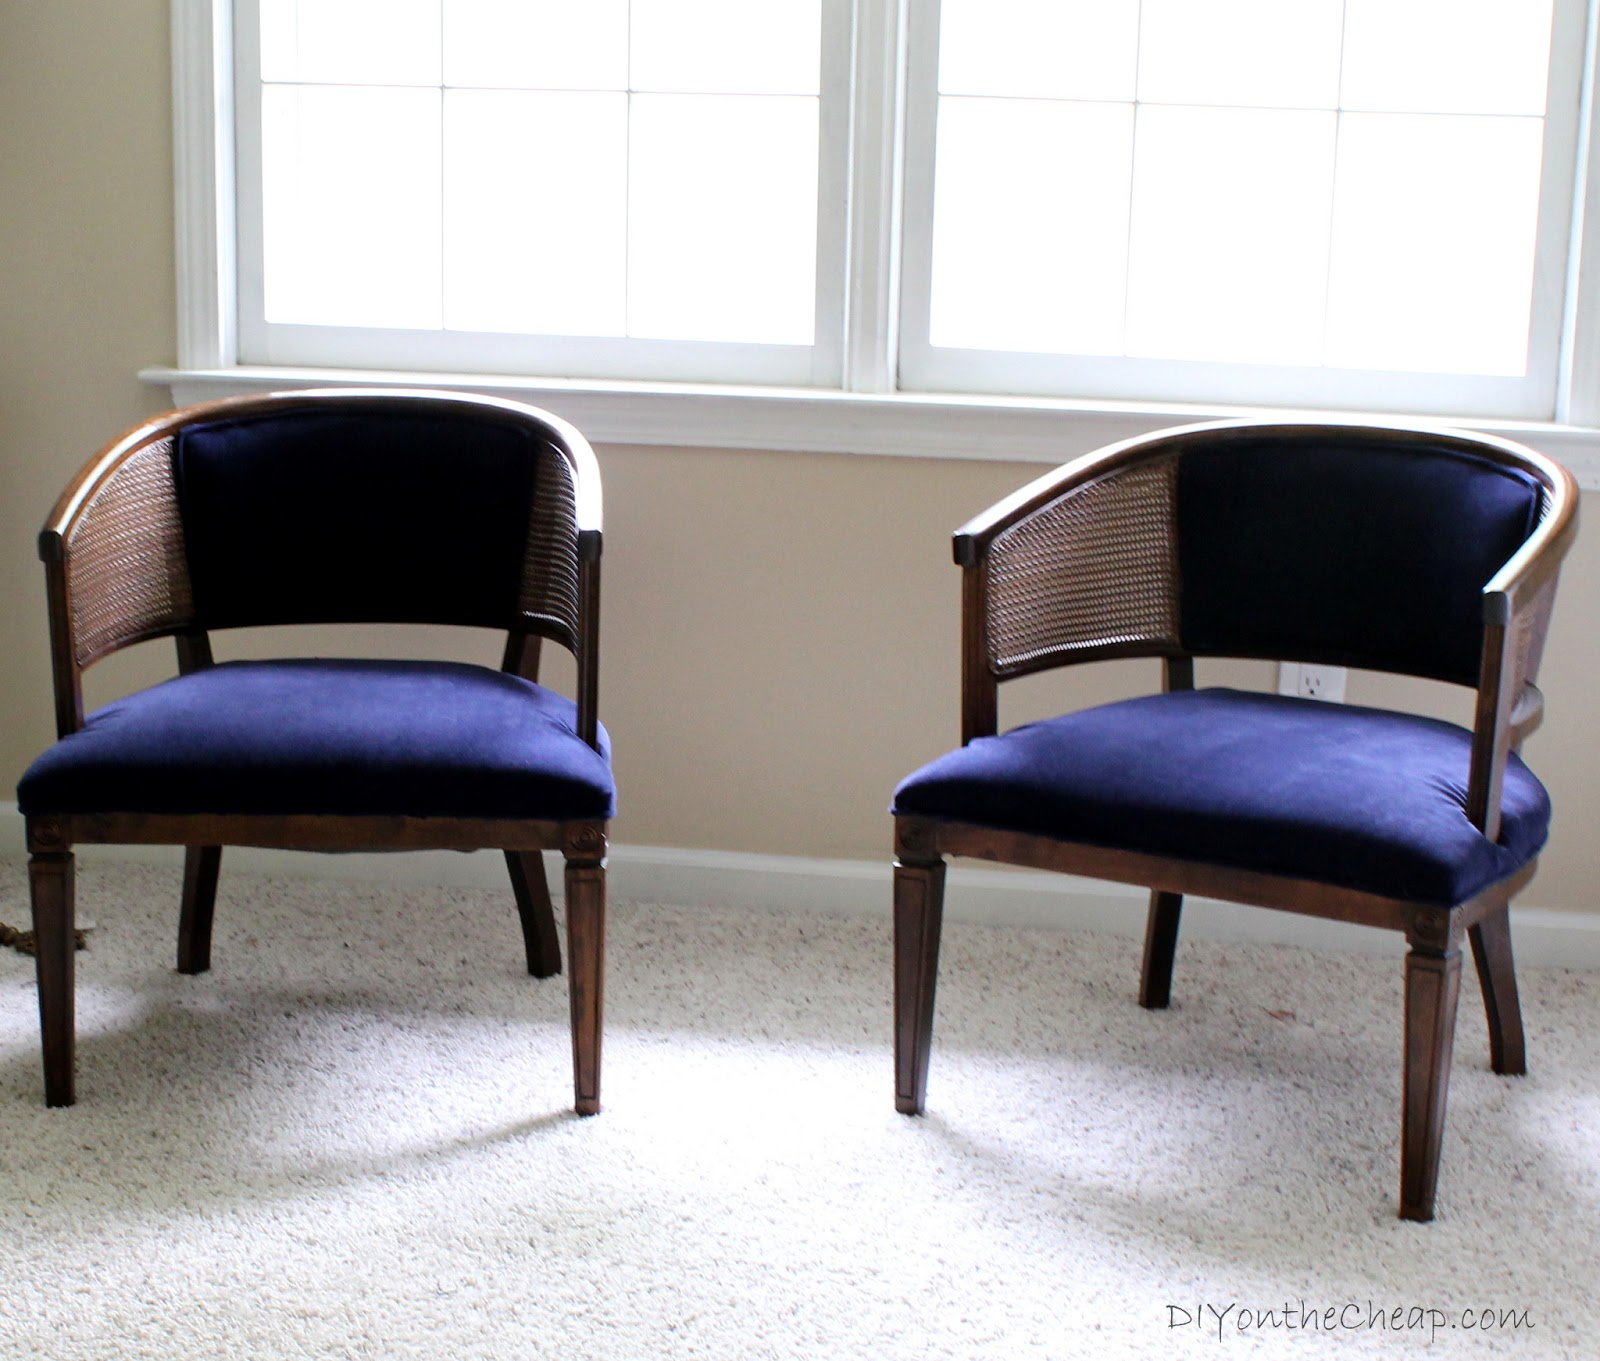 My Lazy Girlu0027s Guide To Reupholstering Chairs {A Tutorial}   Erin Spain